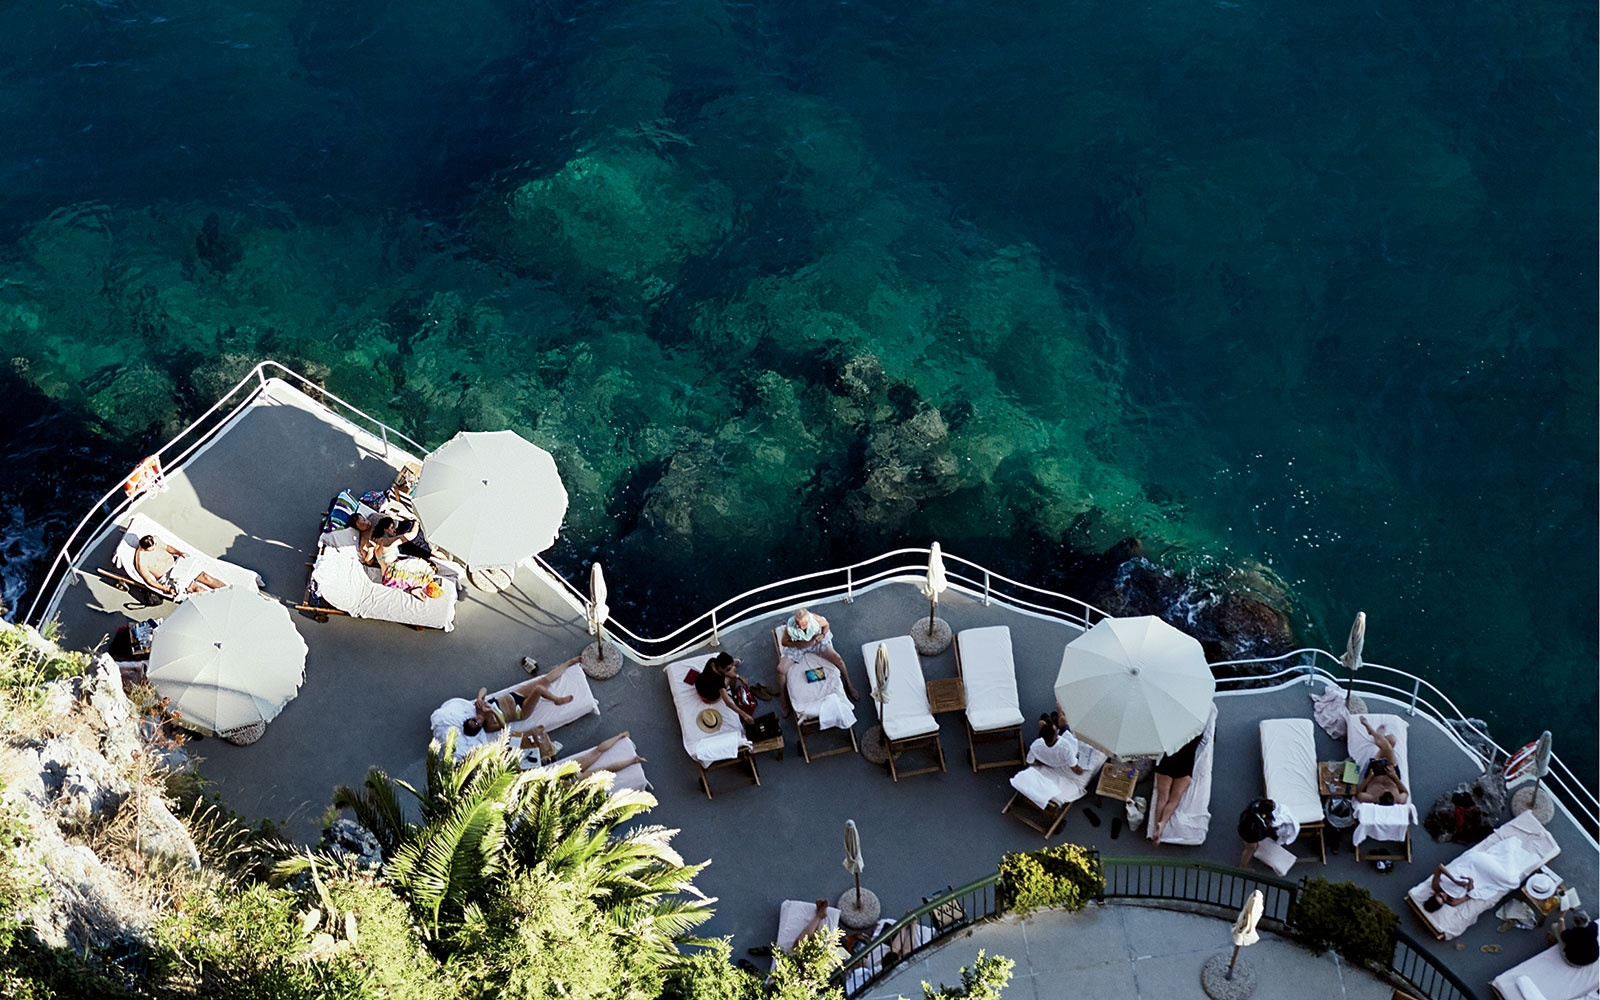 Hanging with the pool guys at Hotel Santa Caterina, Amalfi